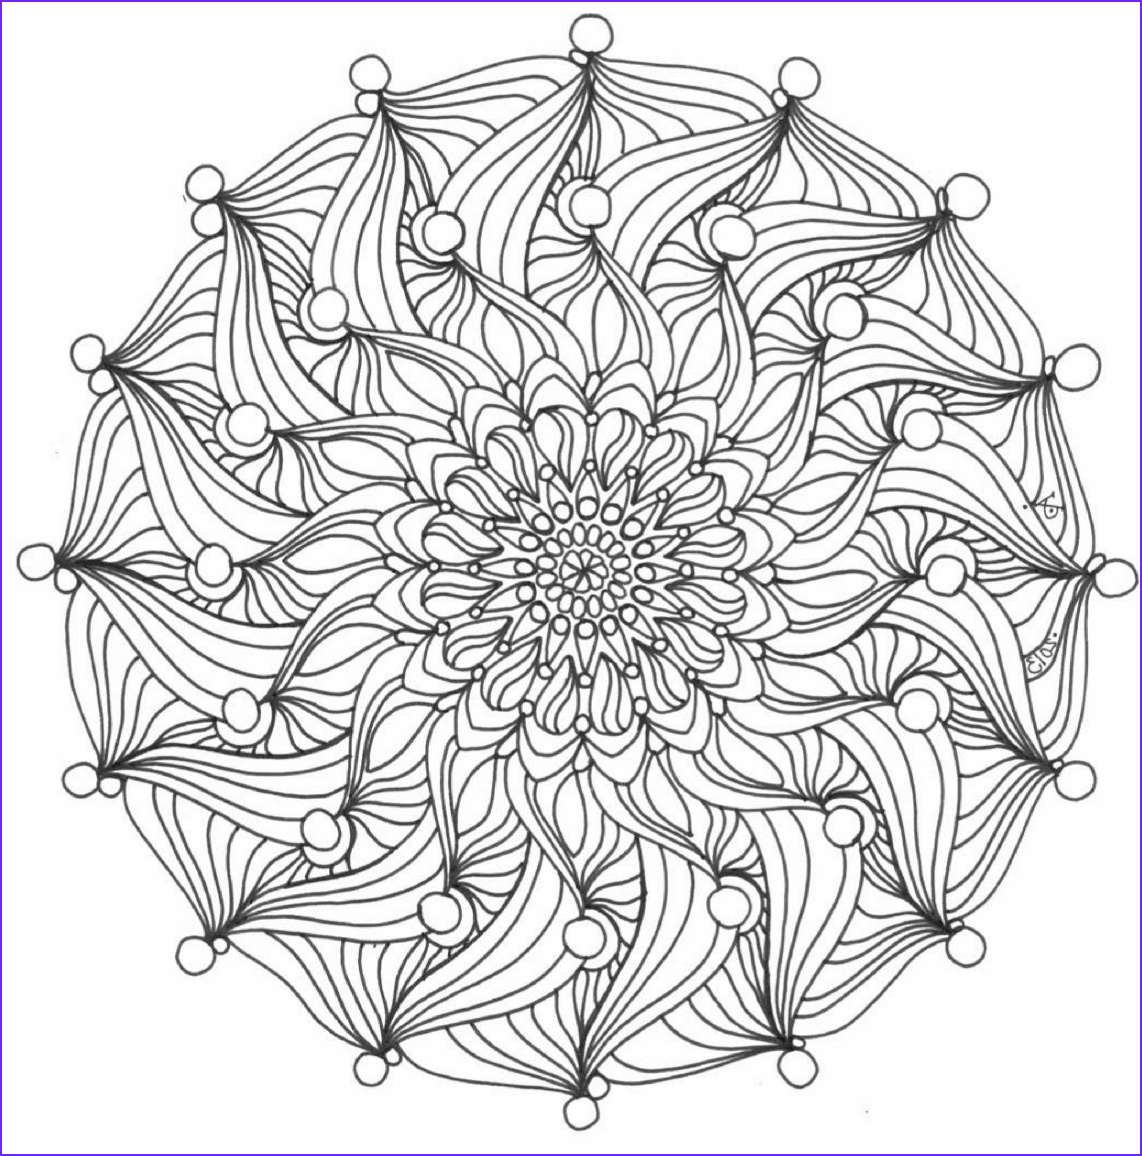 free colouring pages from color me calm